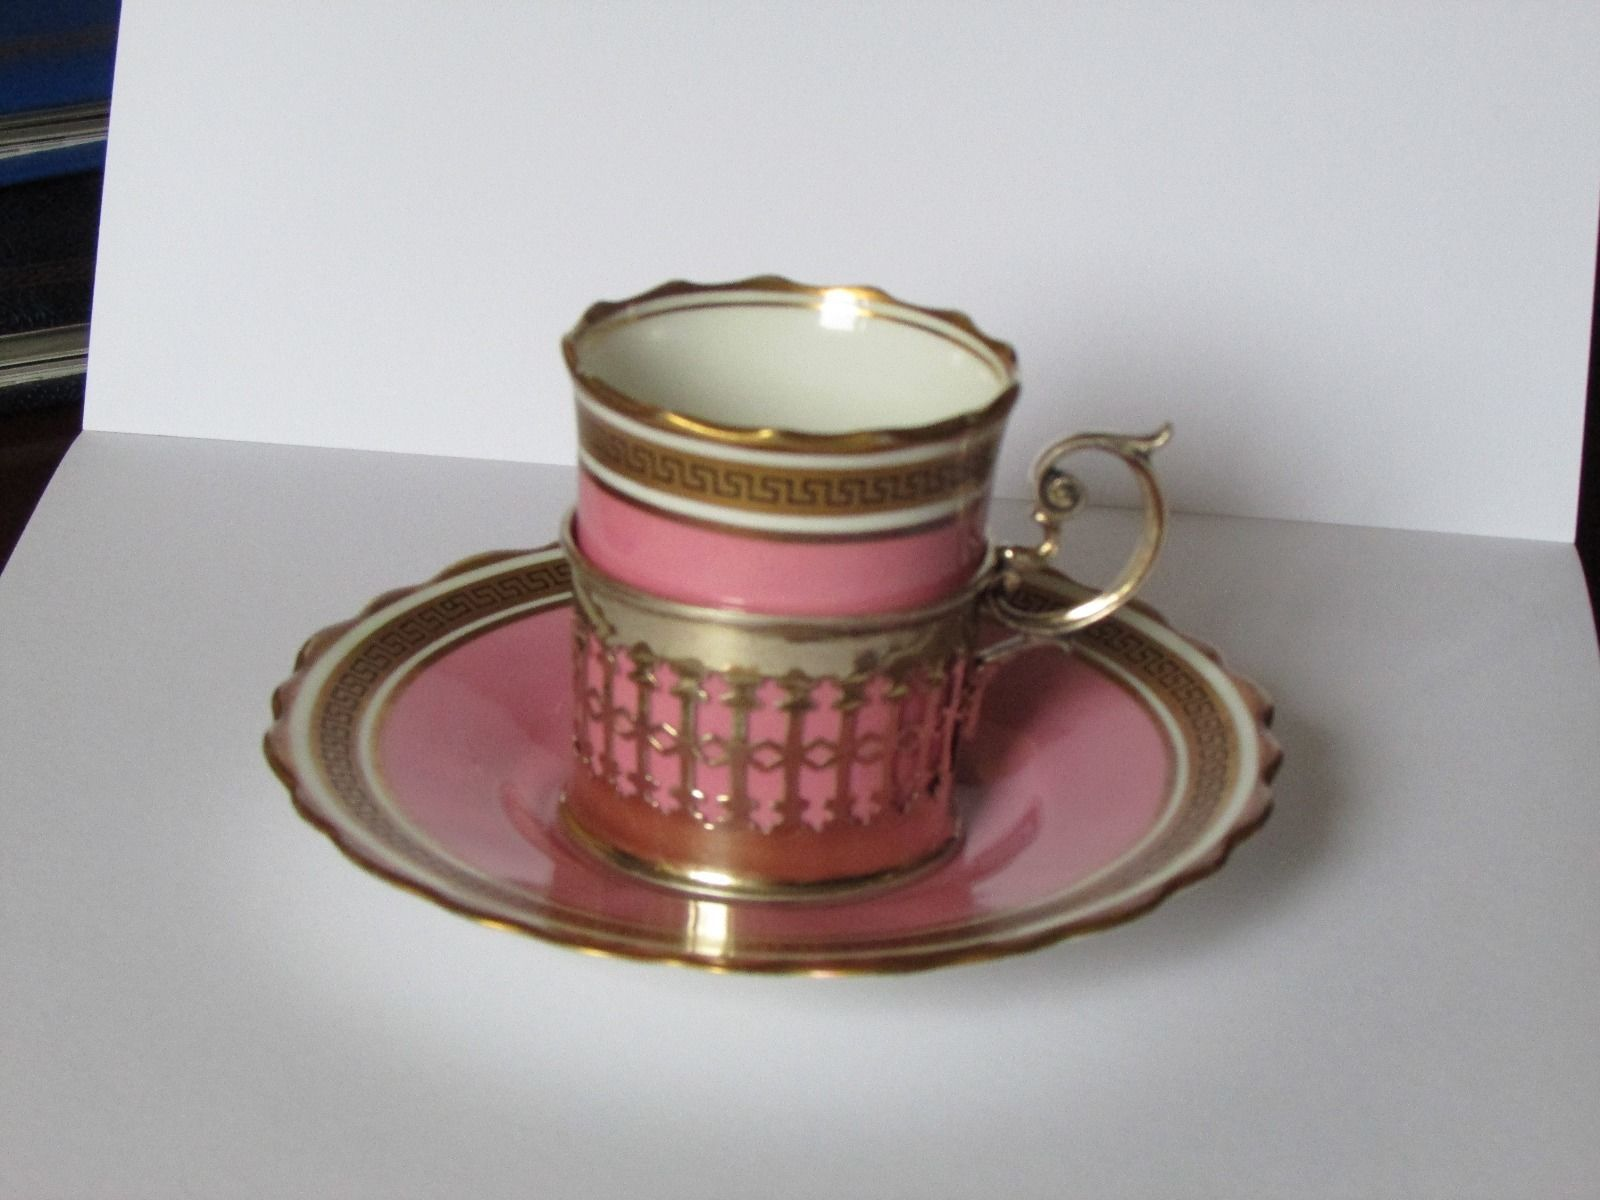 Aynsley porcelain coffee can in silver holder | eBay